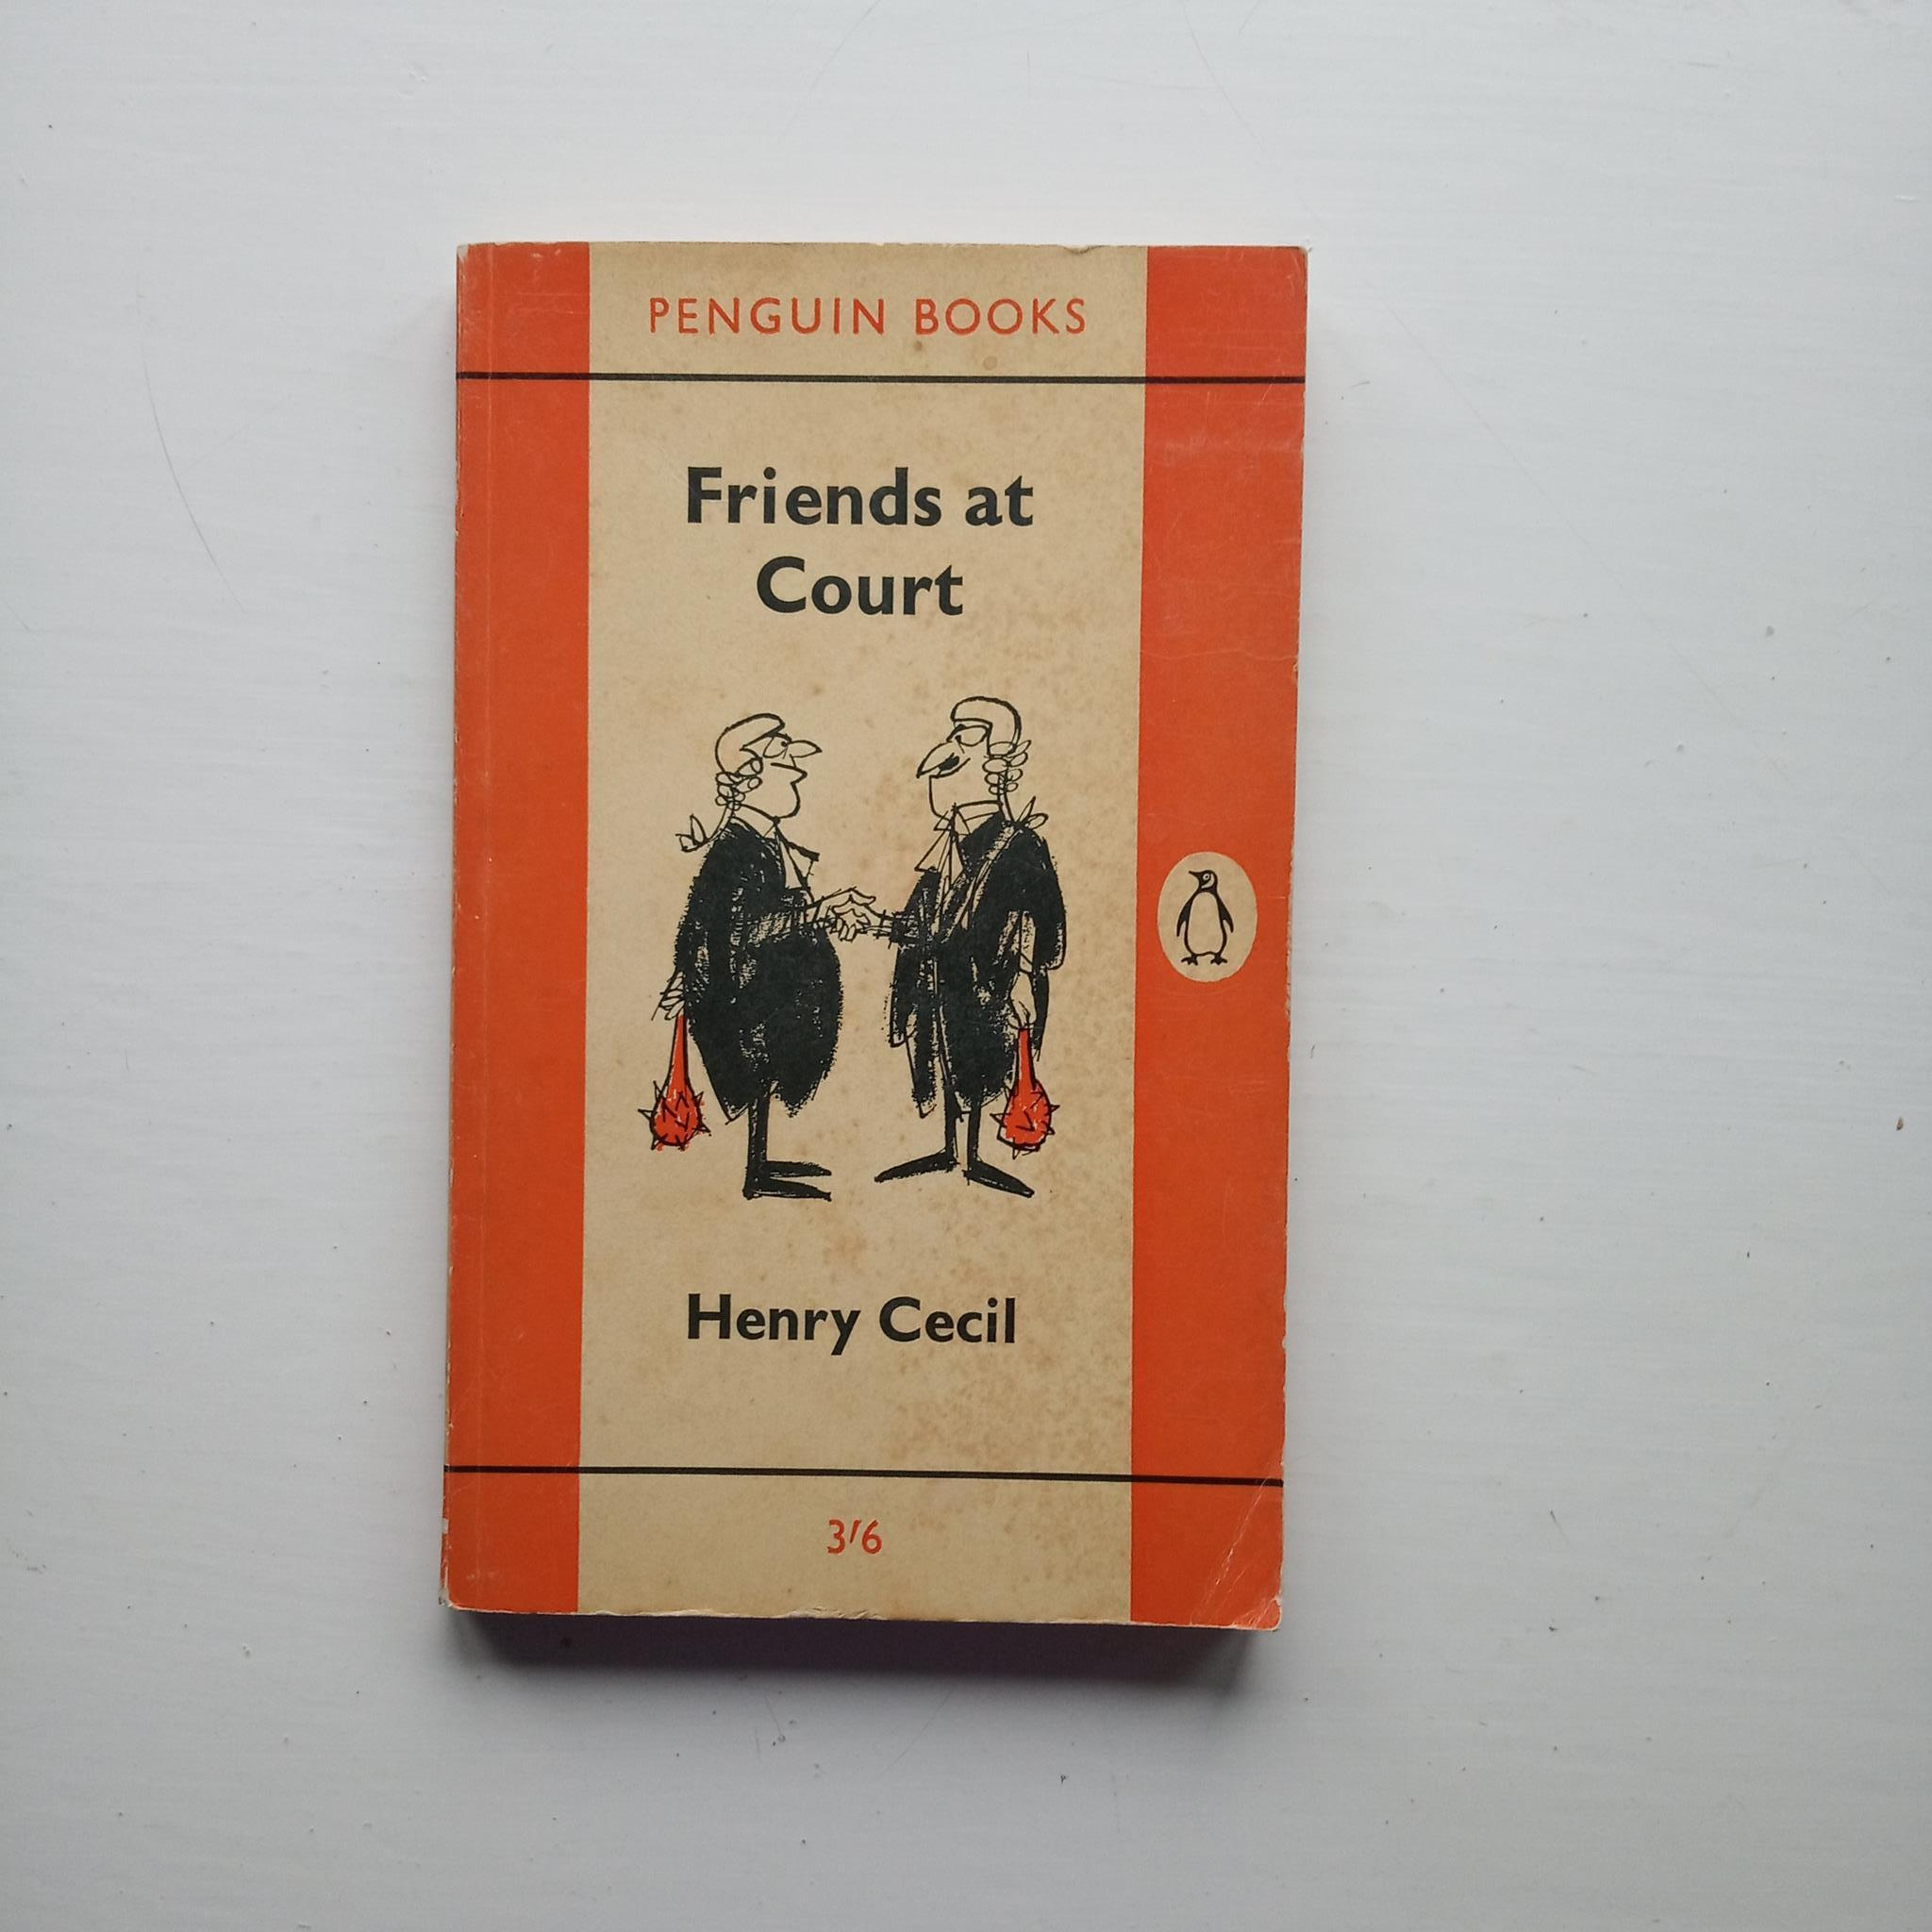 Friends at Court by Henry Cecil